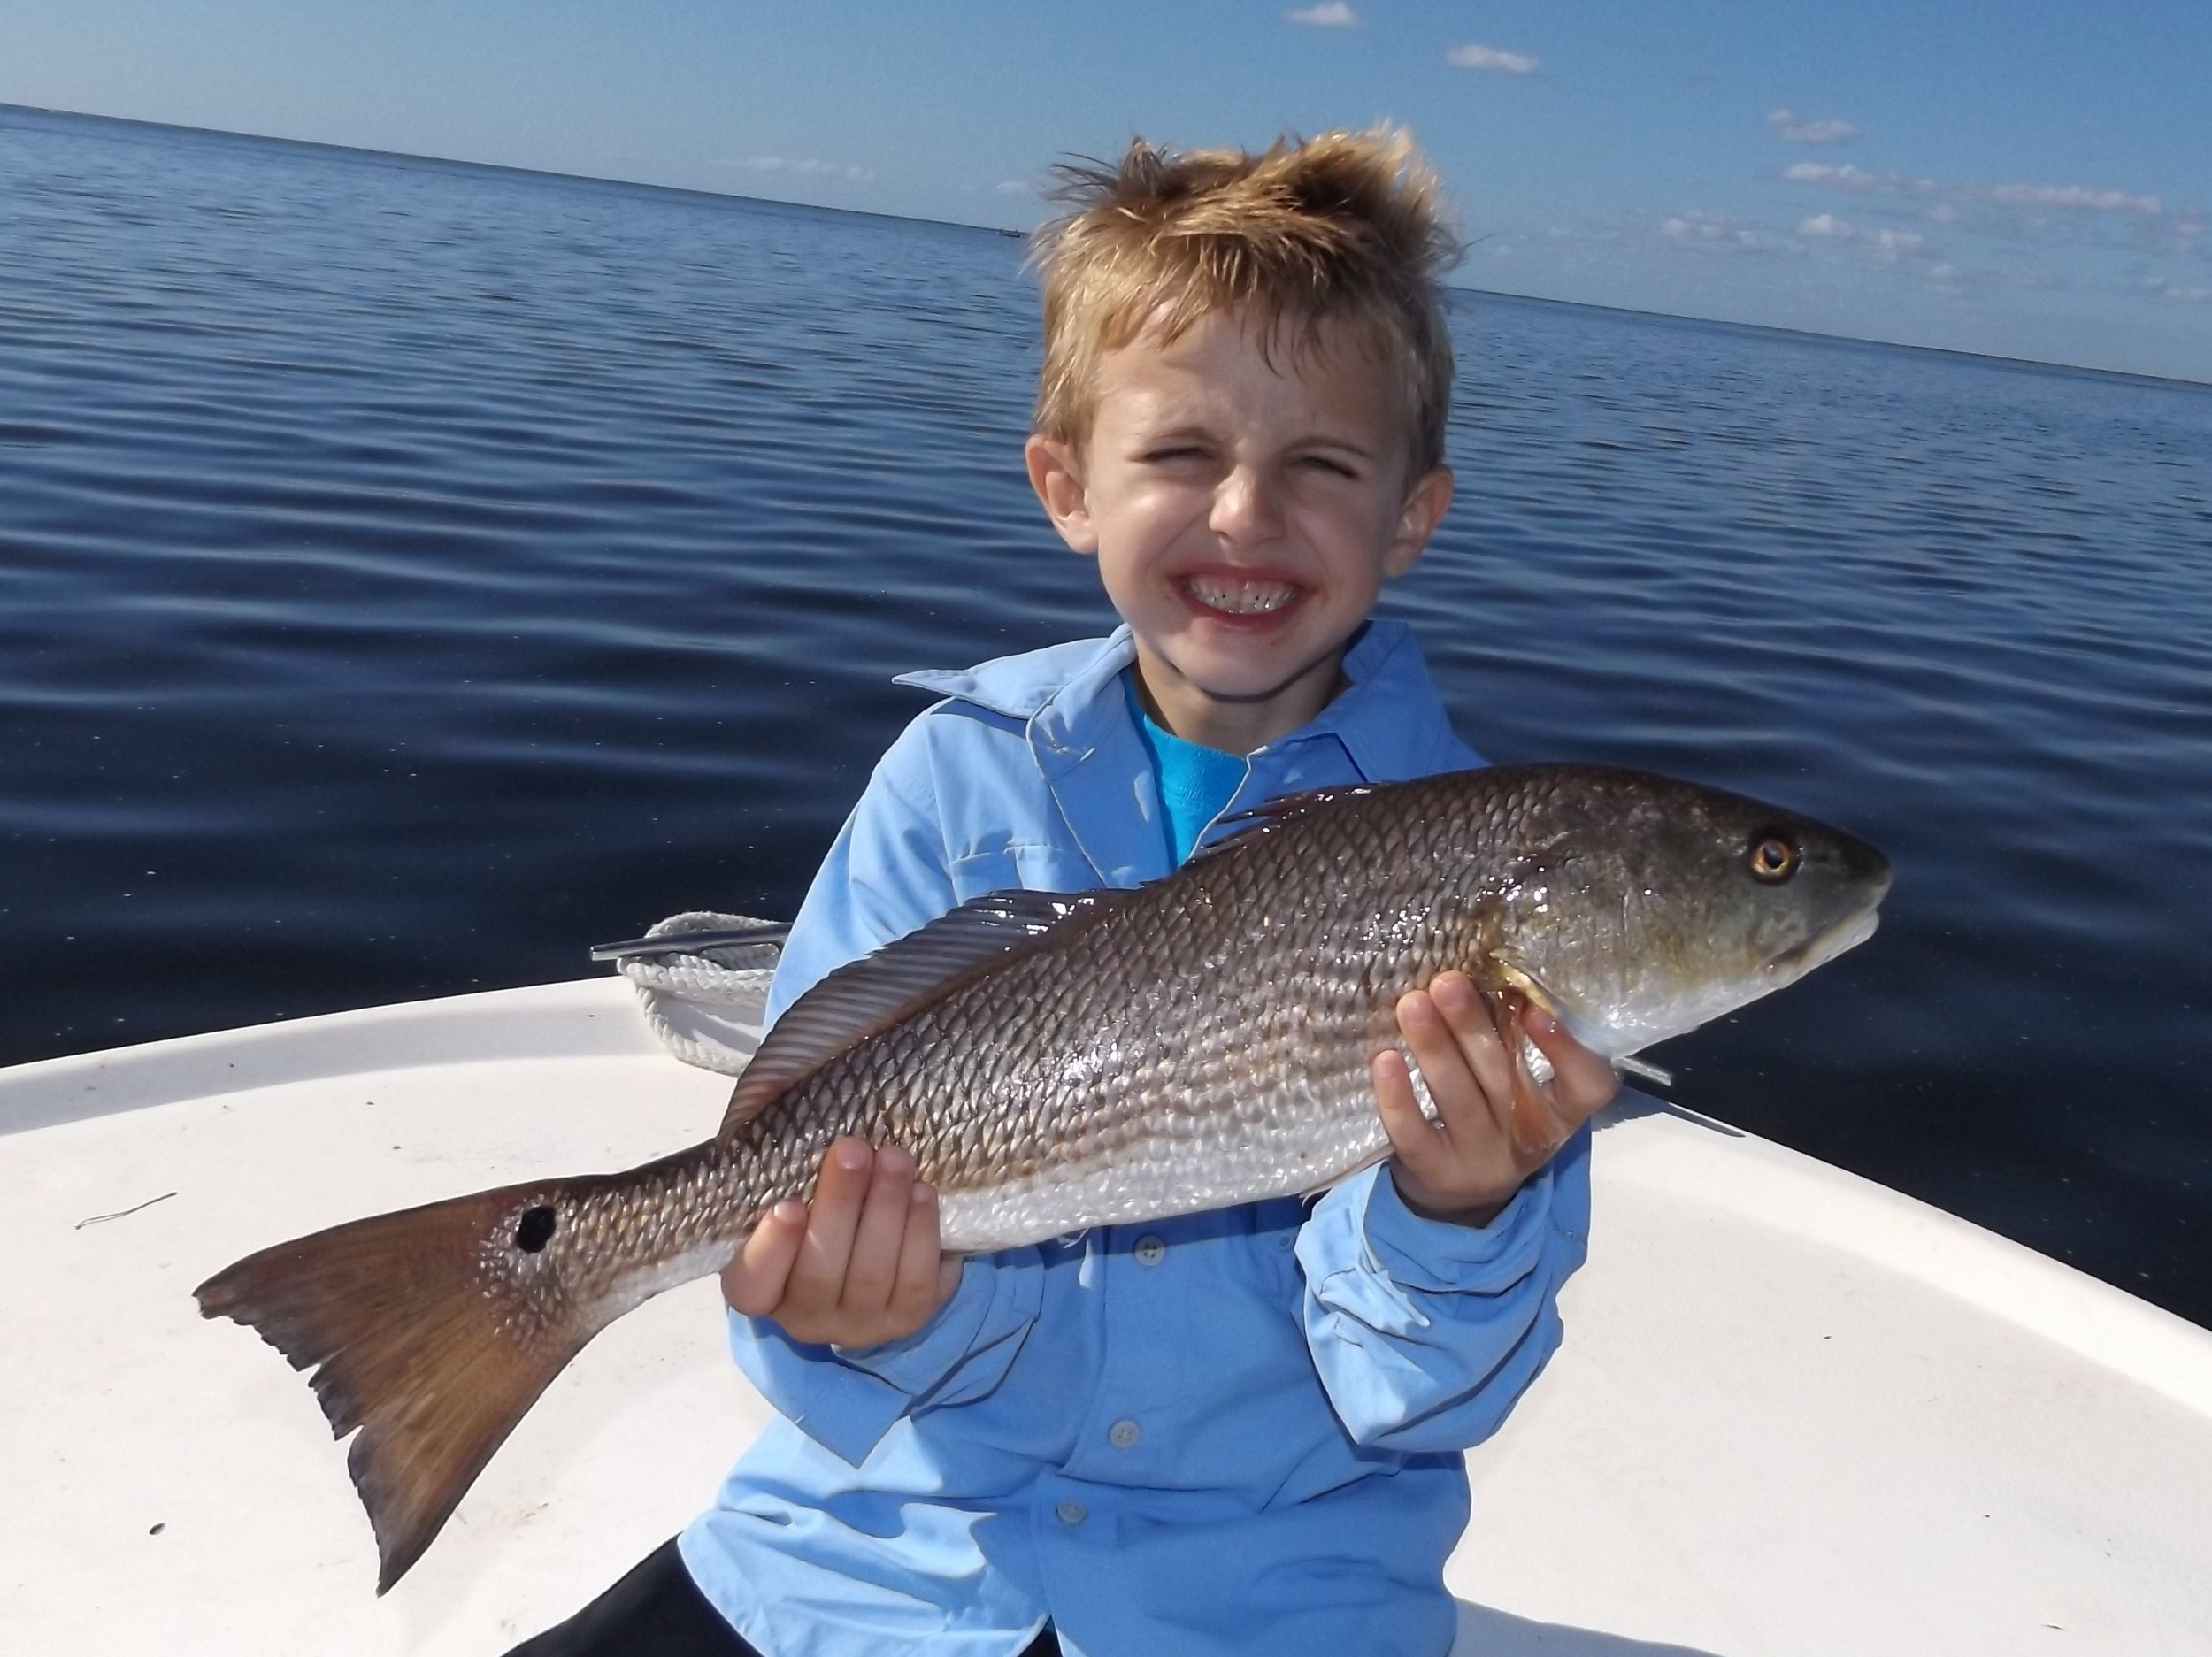 """Porter harden of ft. walton beach, Florida with the largest fish of the day! a 21"""" redfish!"""